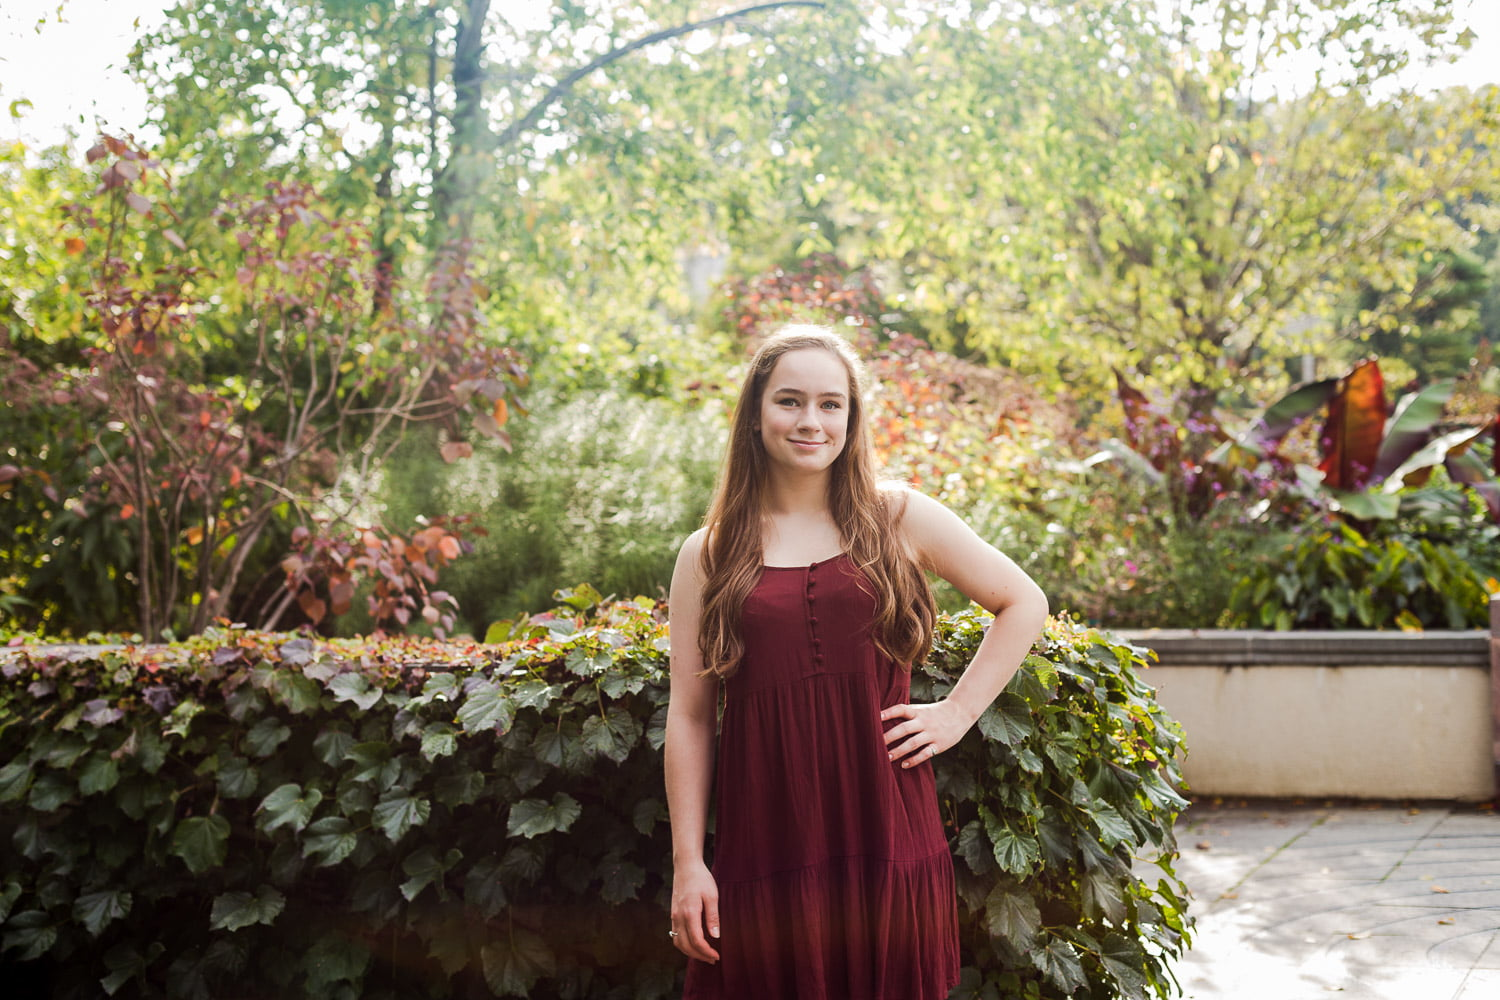 New Prague High School Senior Portraits at the Landscape Arboretum